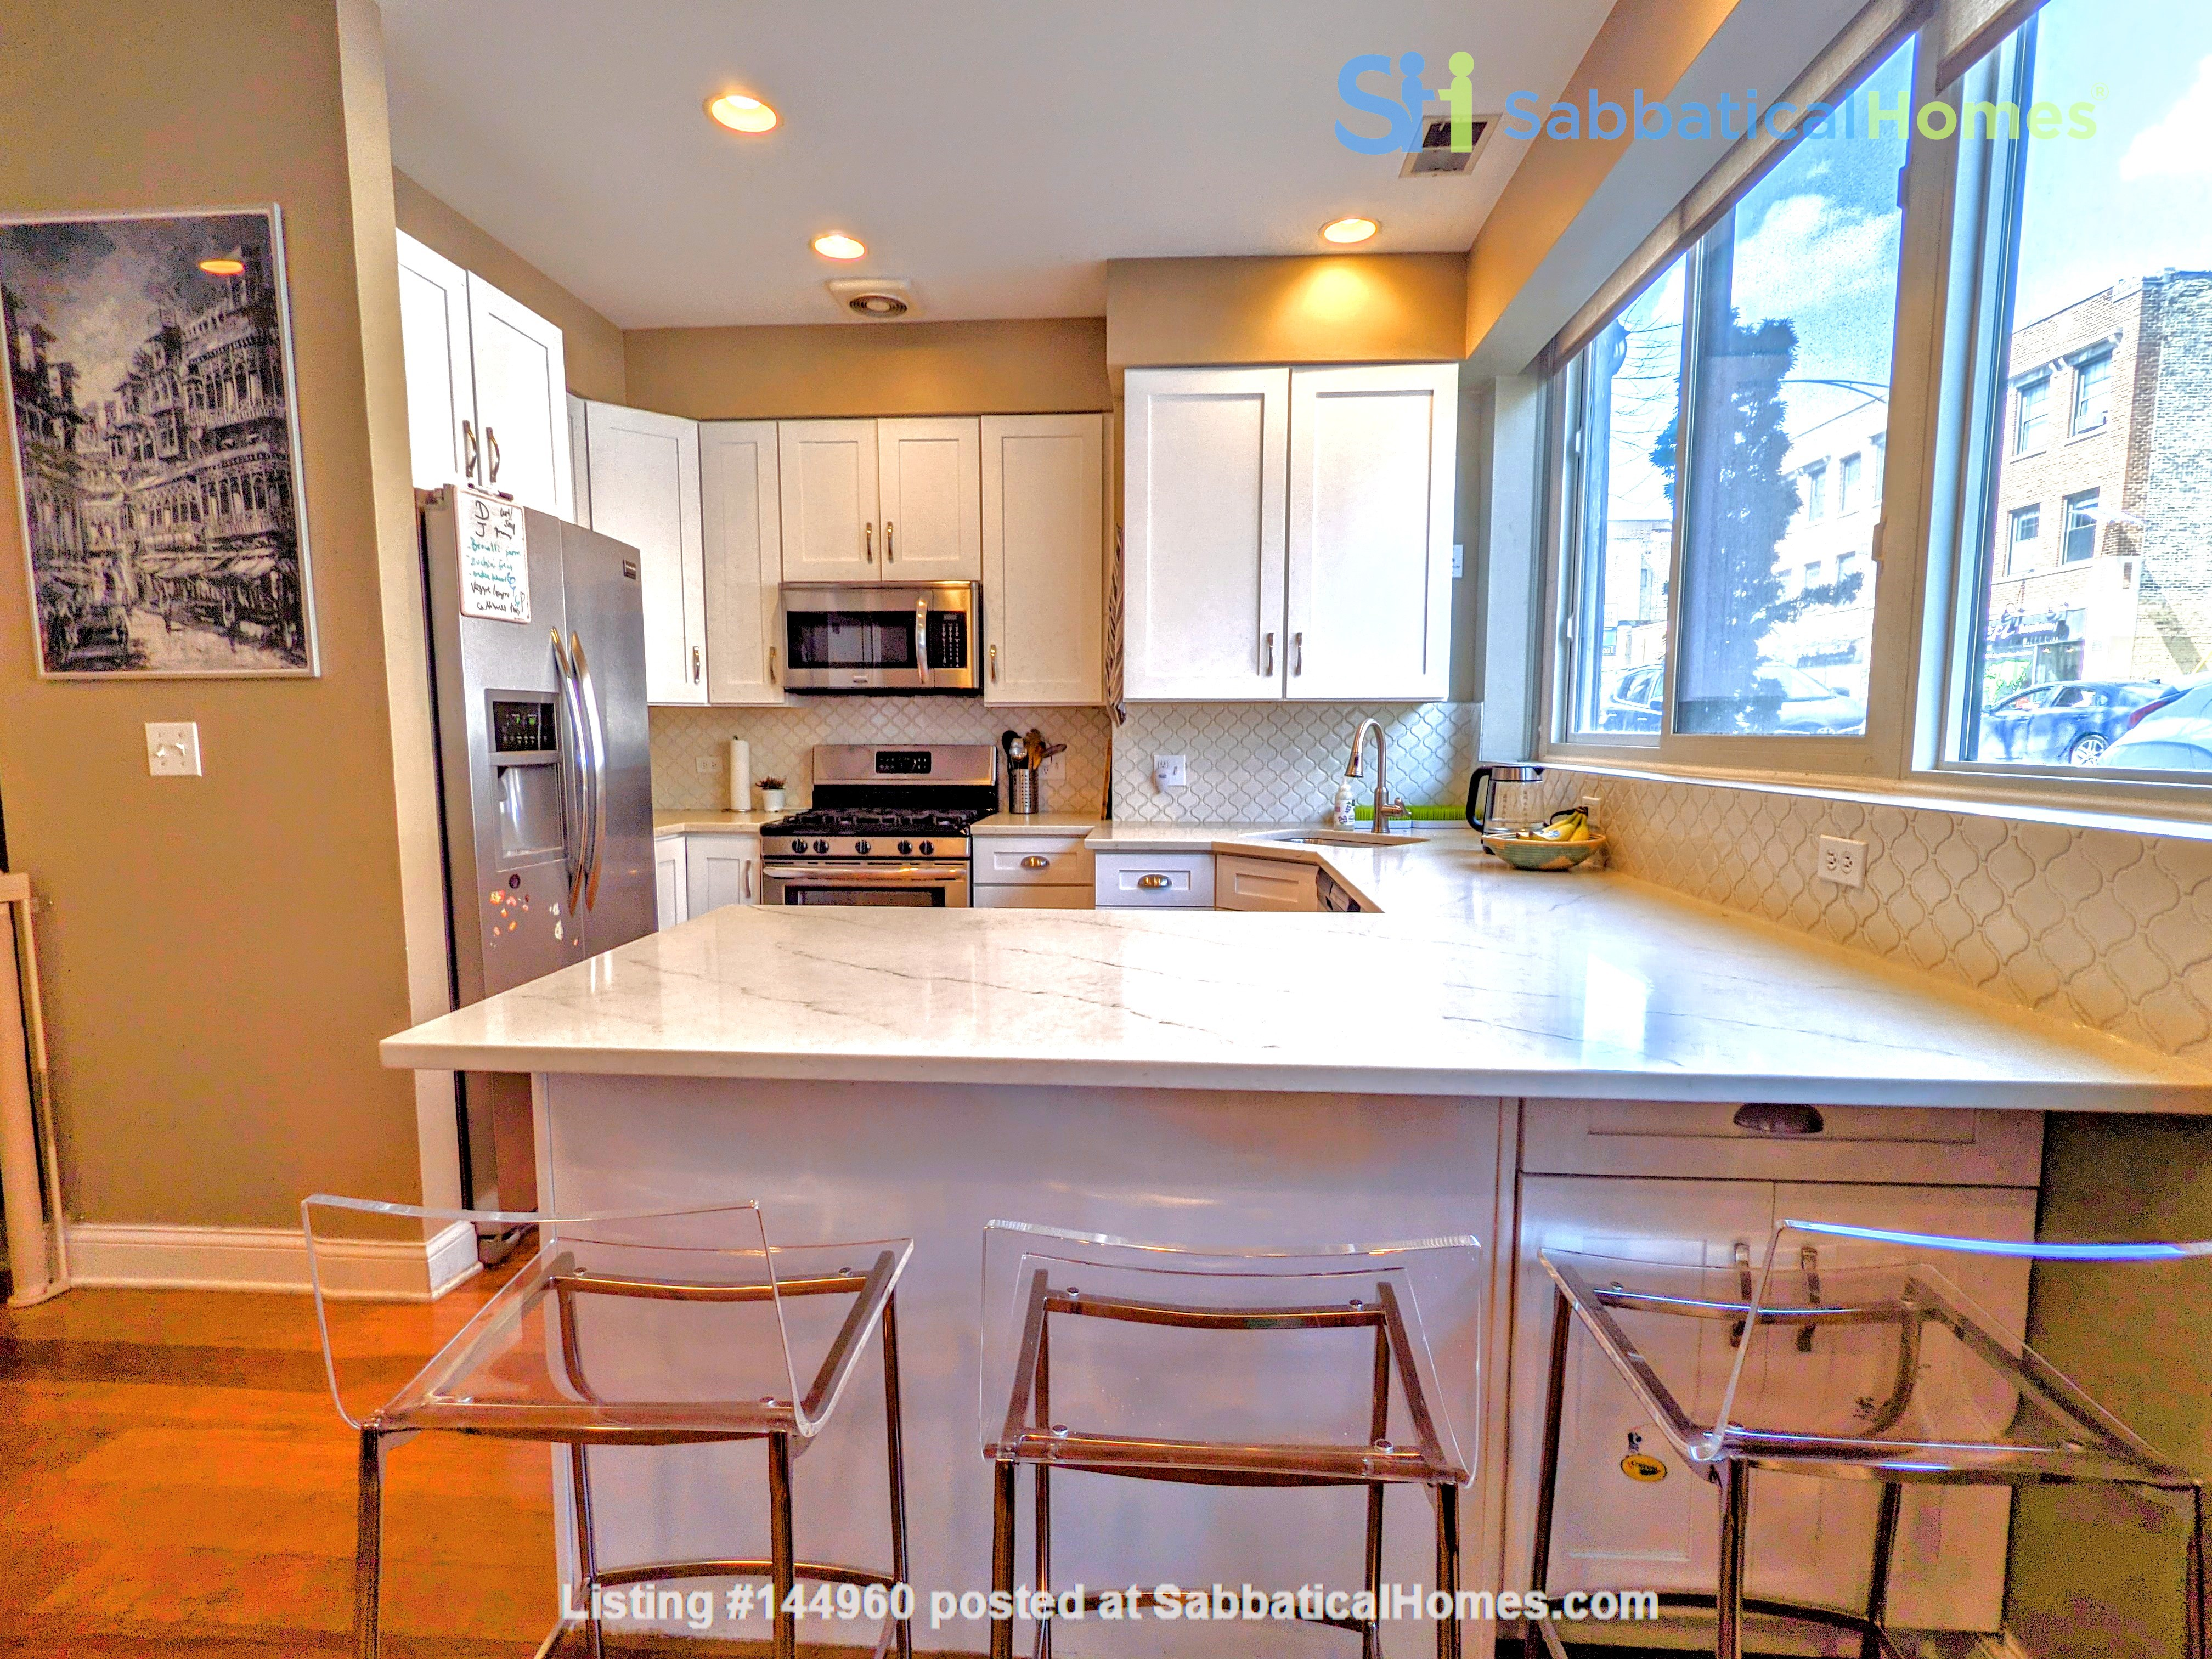 Spacious, fully furnished 3 bd/2.5 ba townhome in Lincoln Park Home Rental in Chicago, Illinois, United States 3